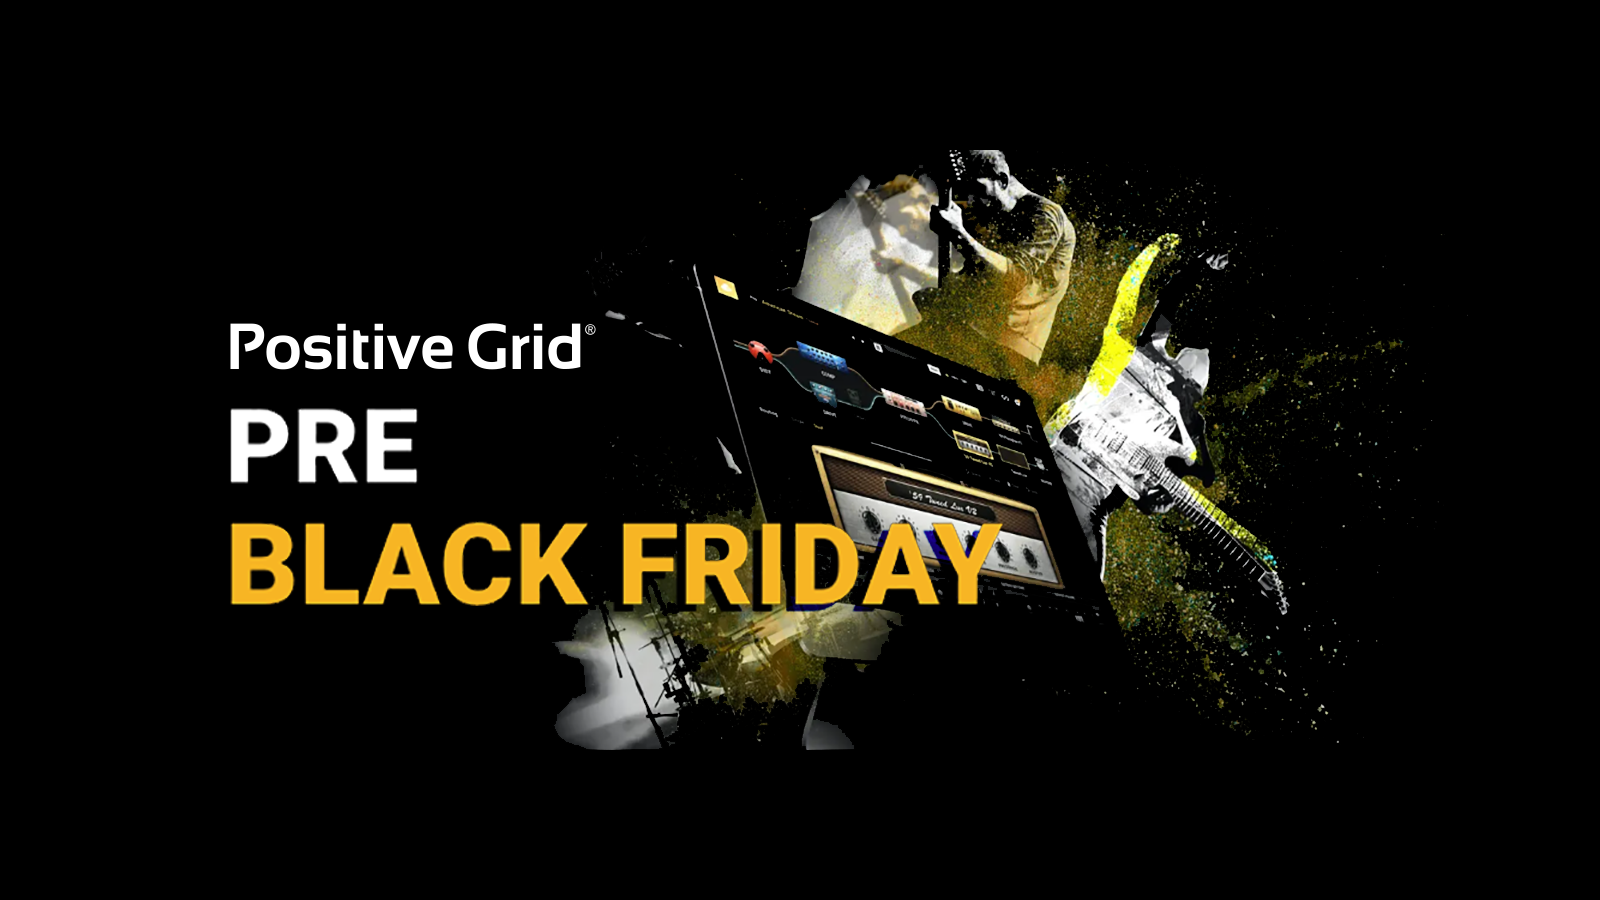 Positive Grid Pre Black Friday Sale